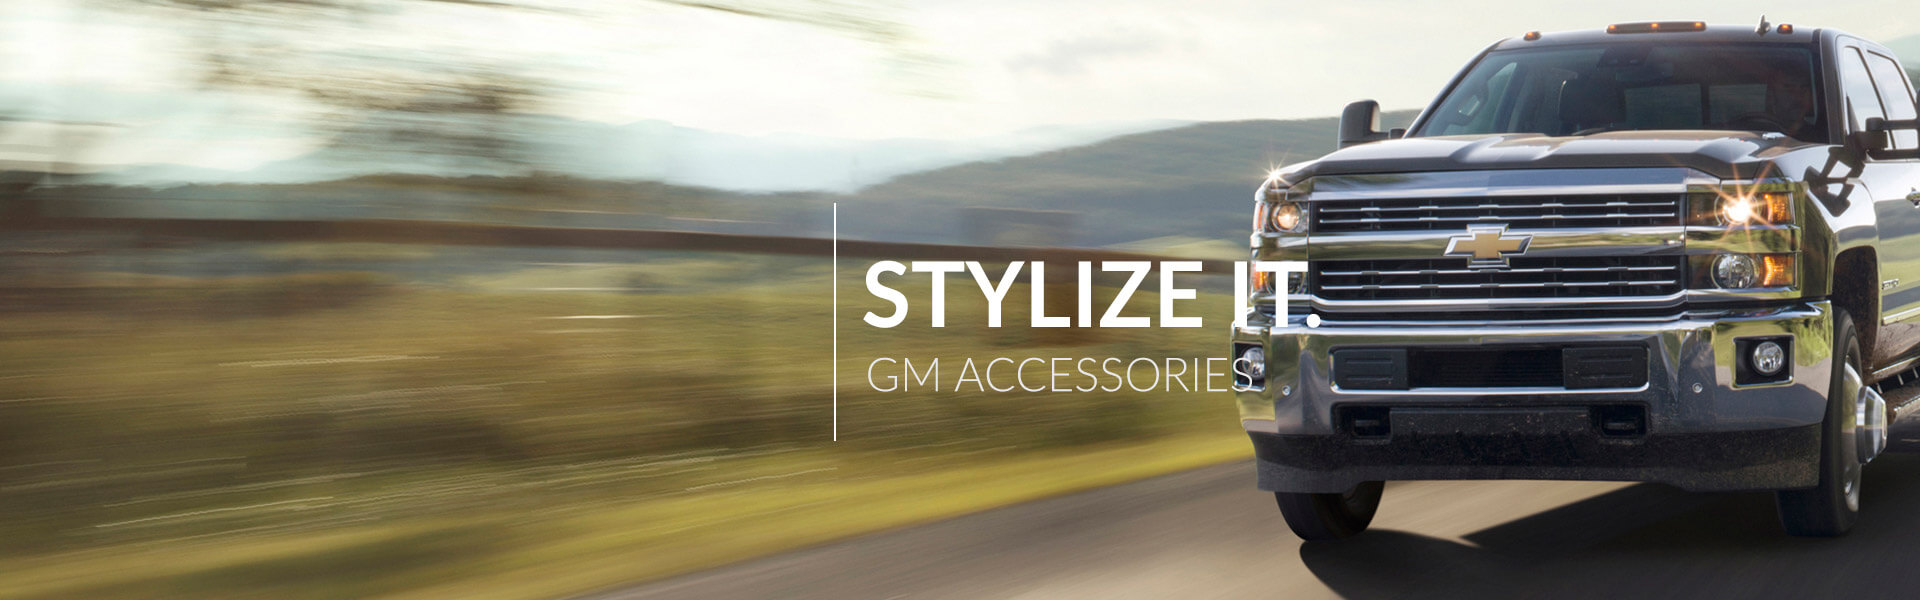 Stylize It - GM Accessories